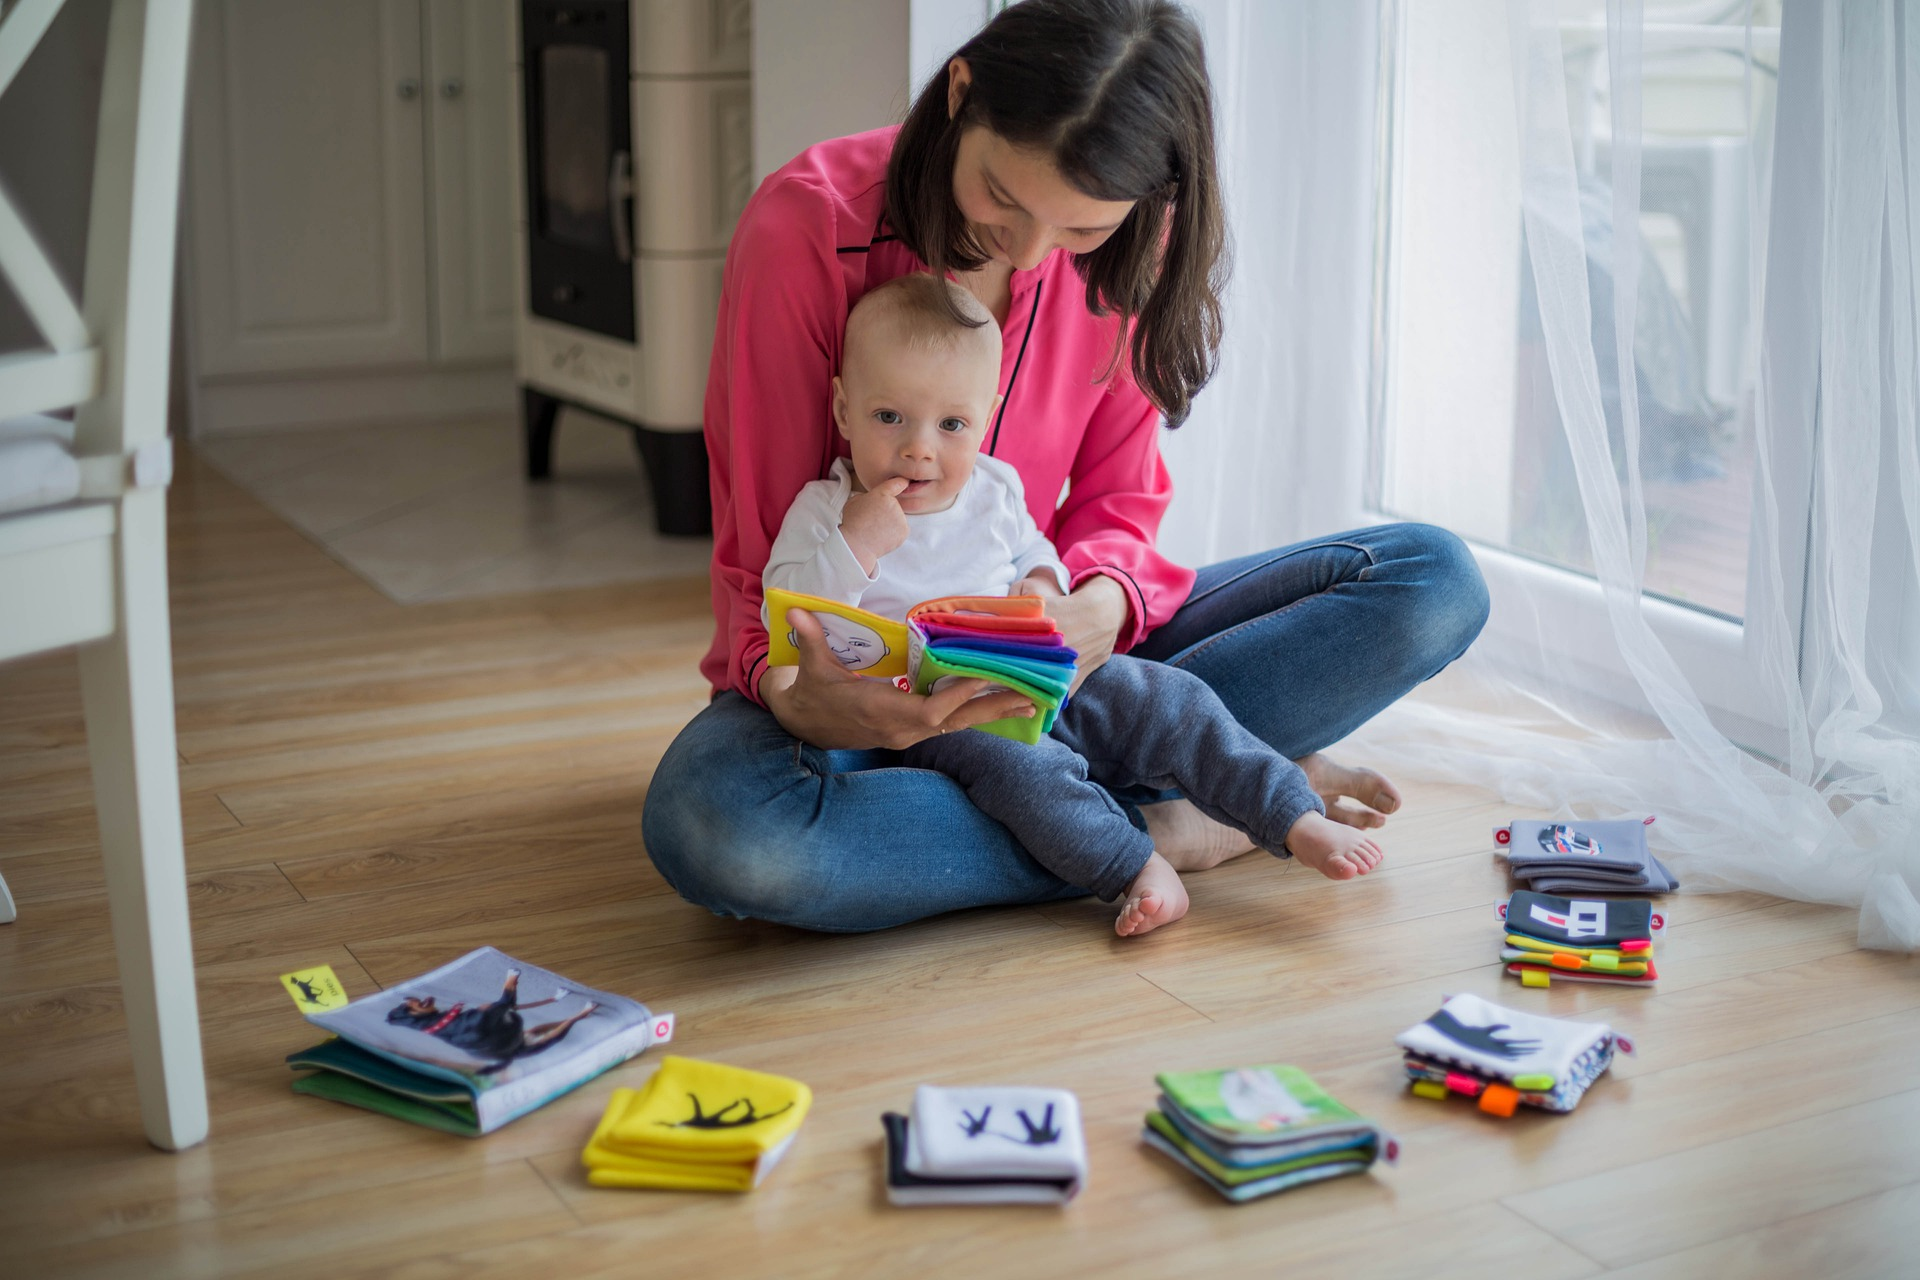 'Parenting books and effective tips to raise mentally strong kids'